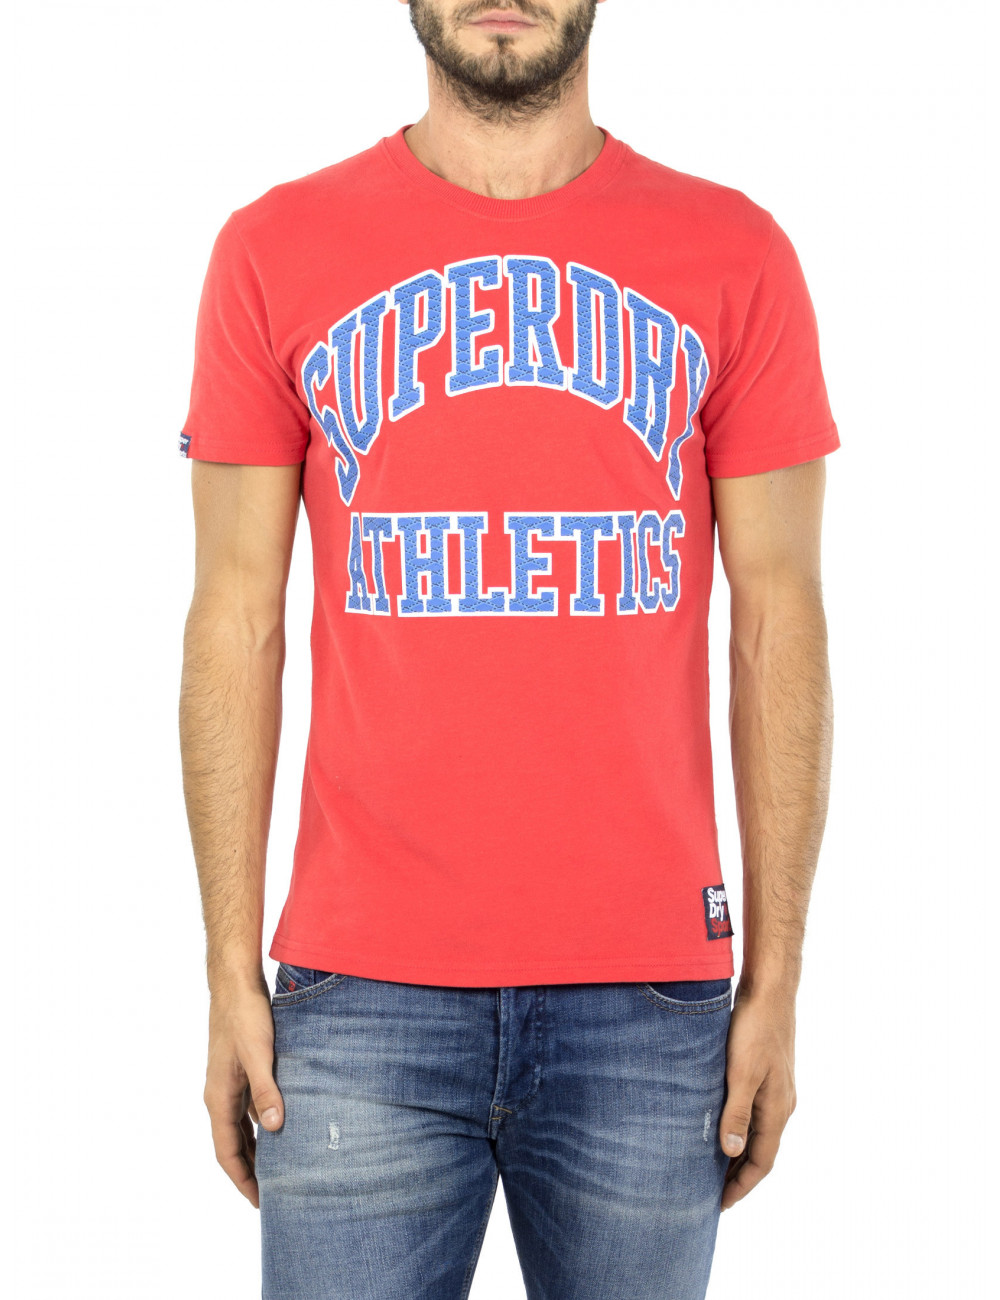 T-shirt Team Tigers Podium Superdry